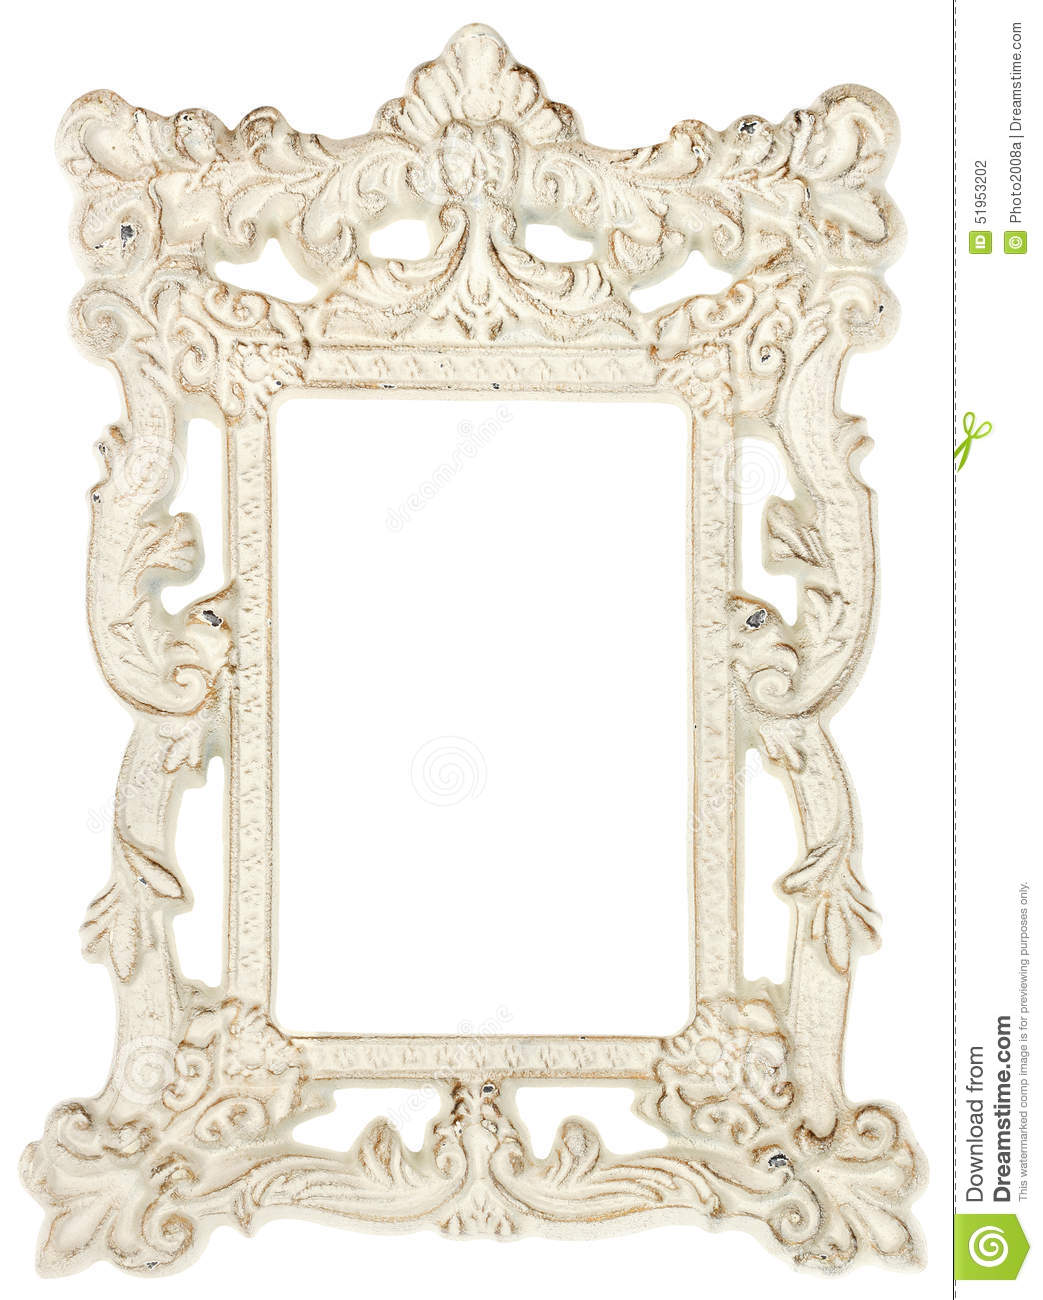 Shabby Chic Picture Frame stock photo. Image of decor - 51953202